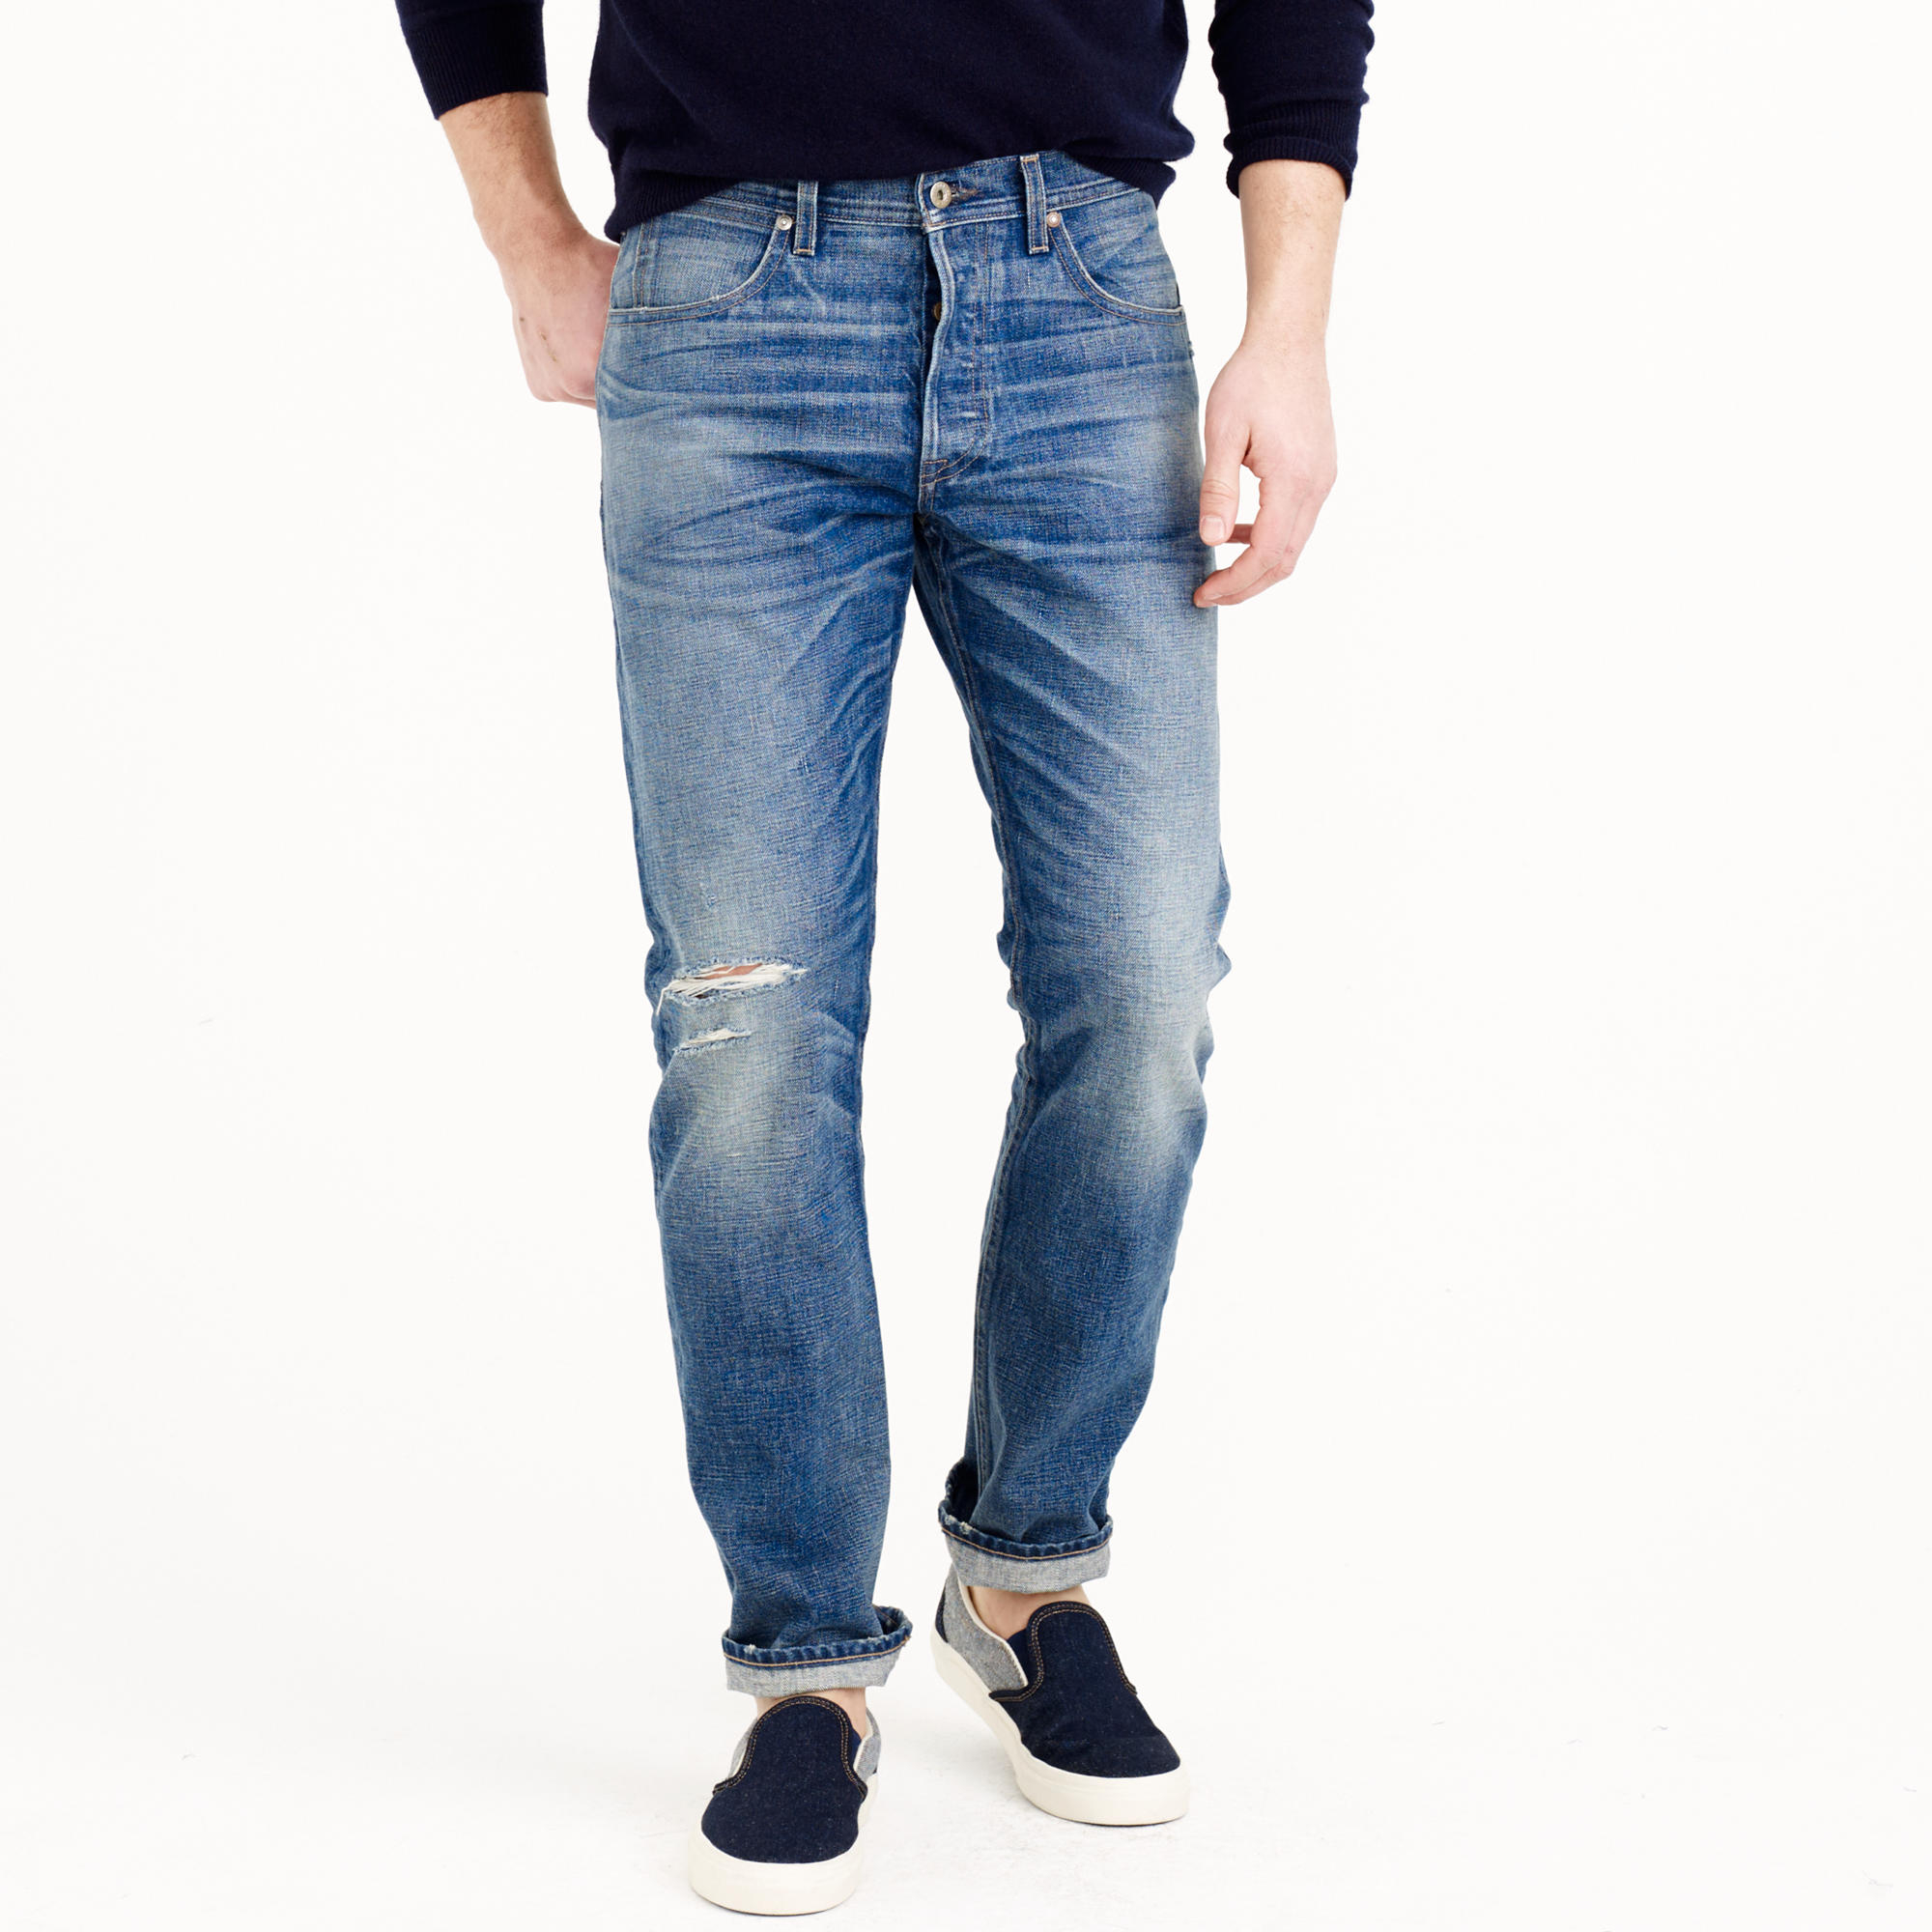 J Crew Wallace Amp Barnes Japanese Denim Jean In Destroyed